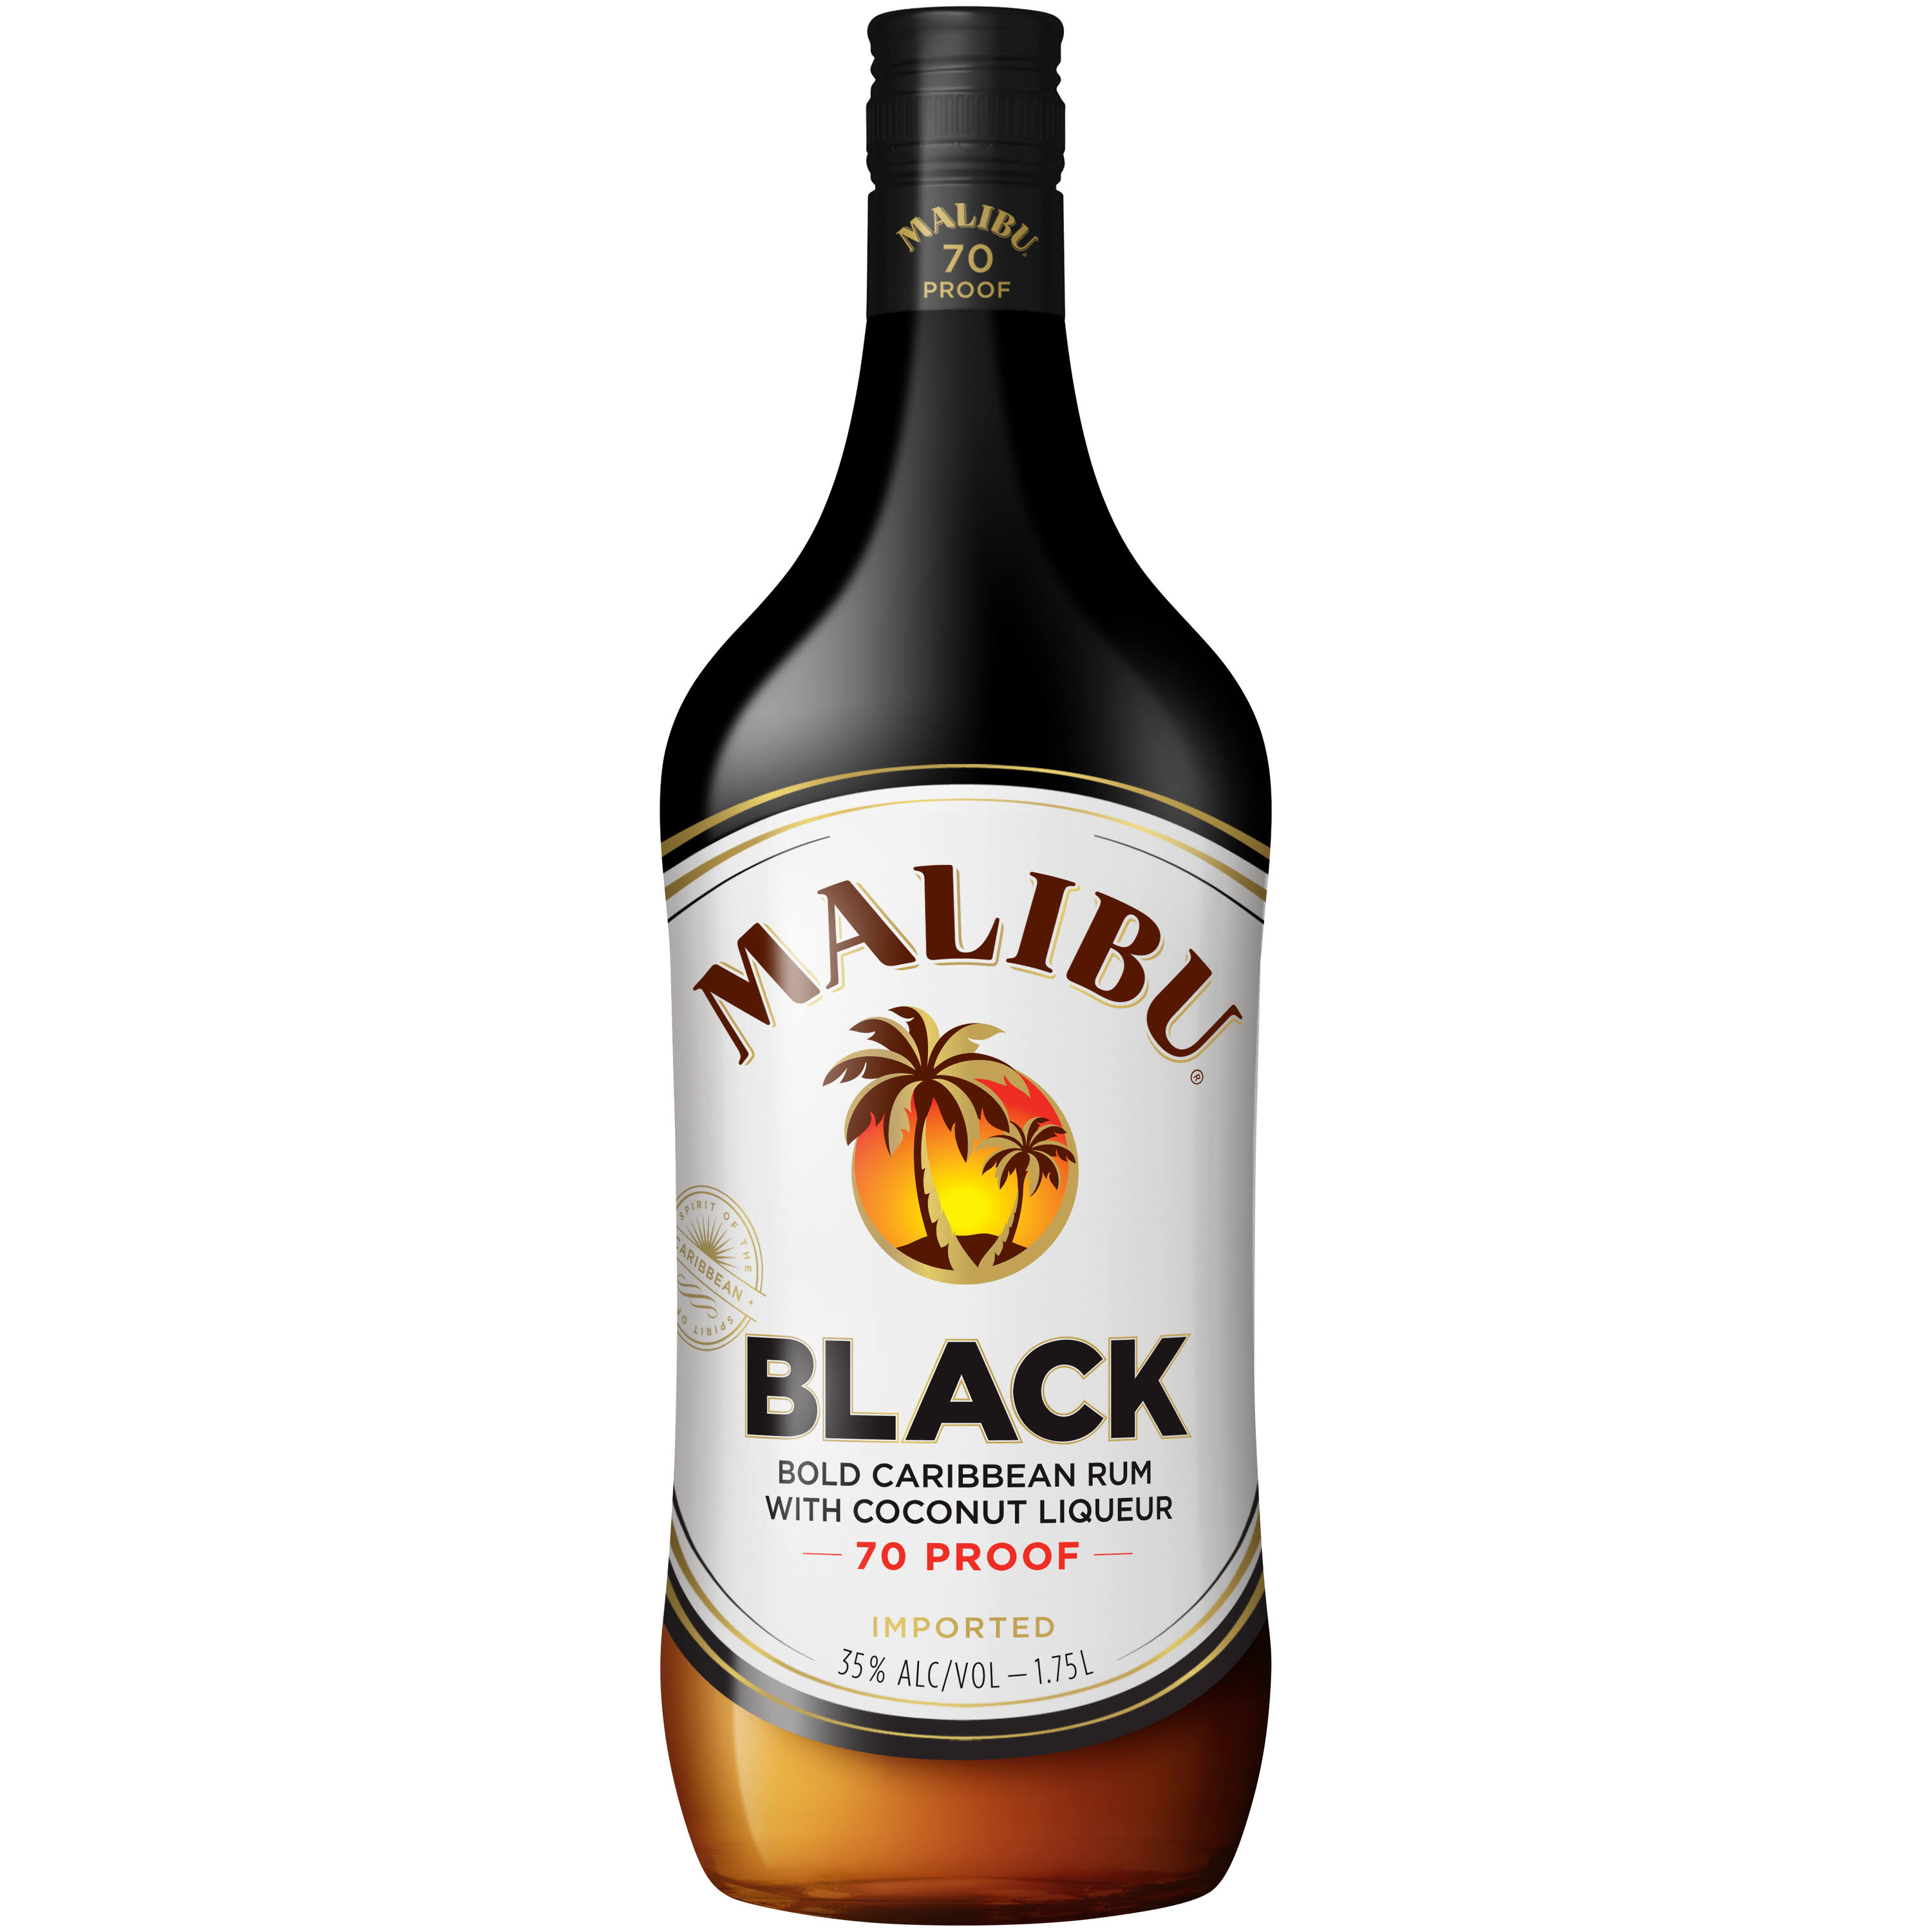 Malibu Rum Caribbean Black 1.75 L Bottle